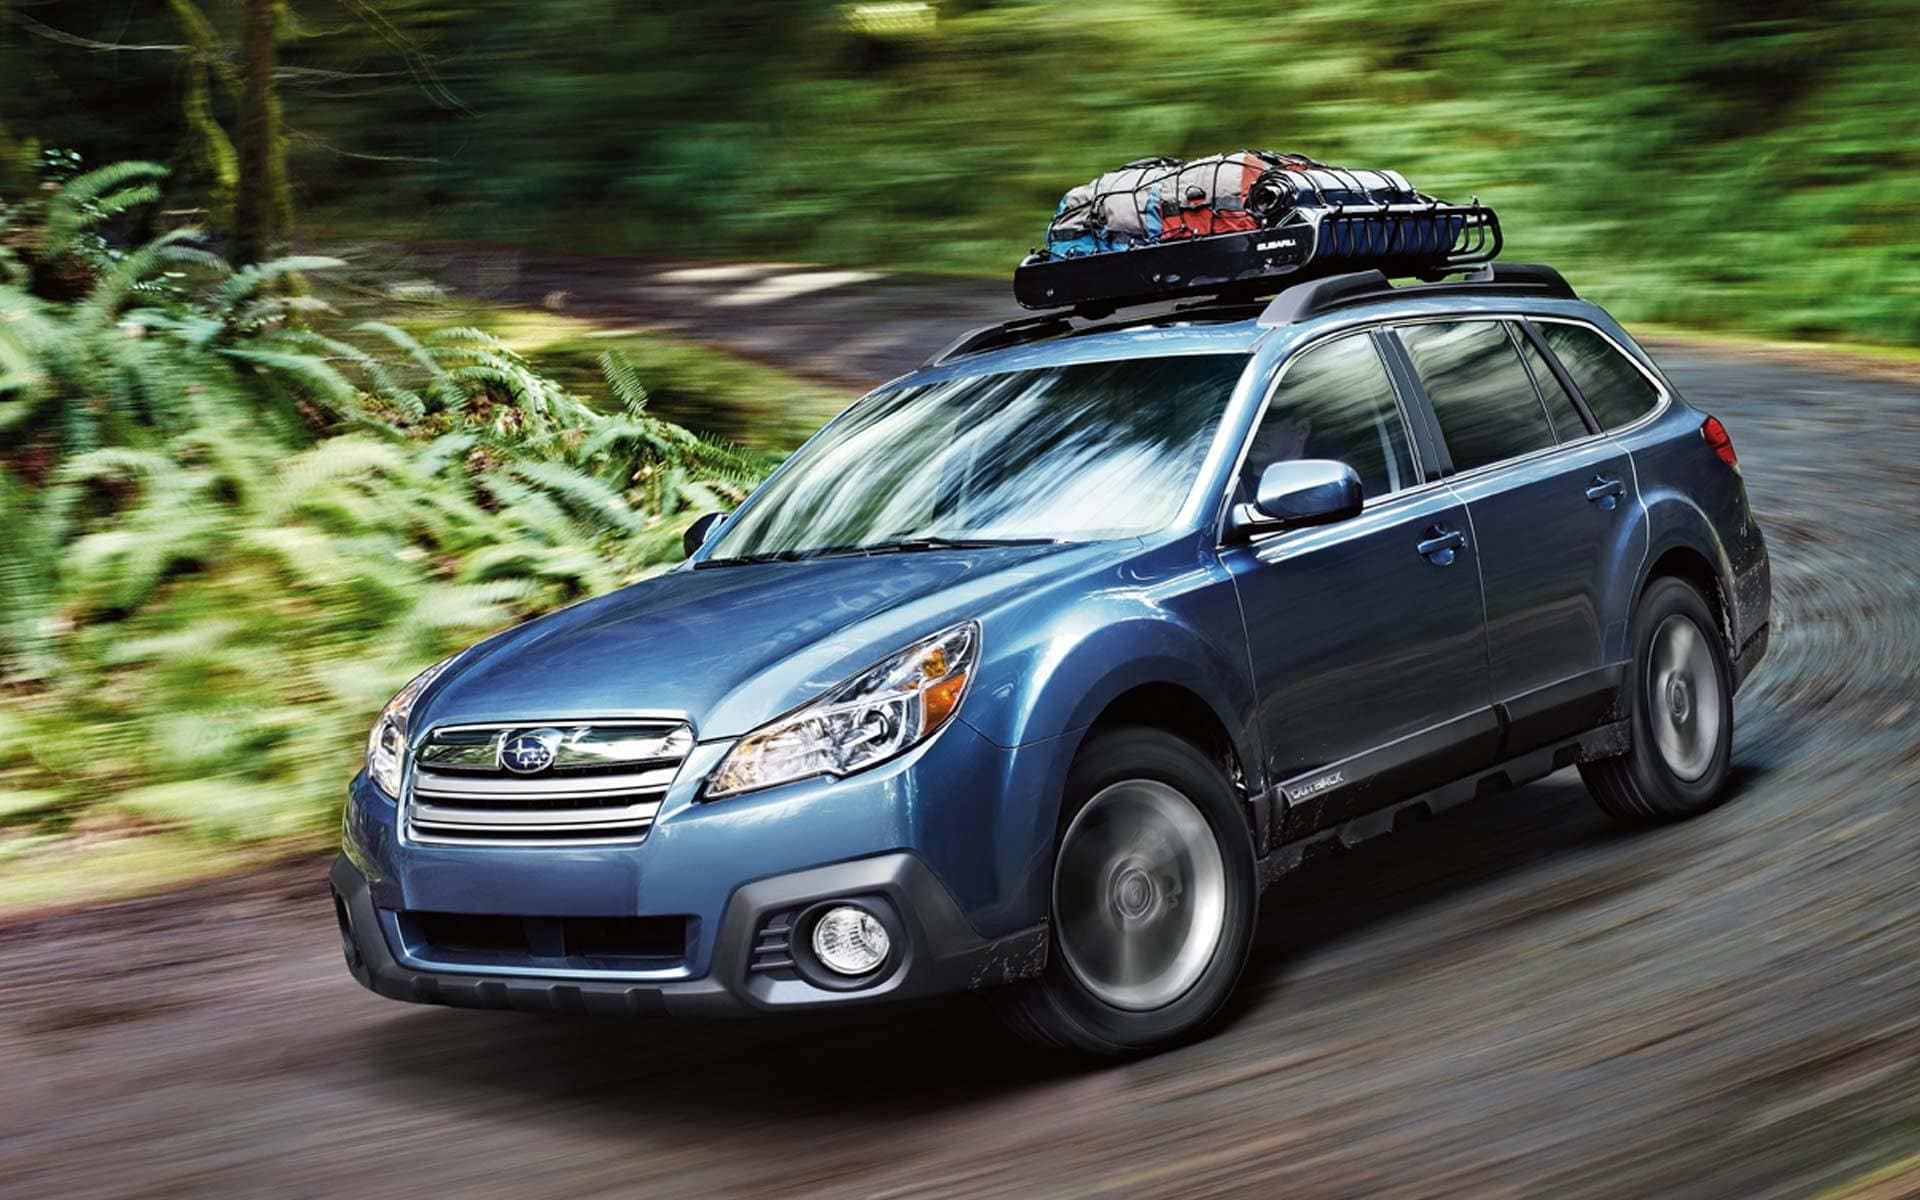 2013 Subaru Outback in Ta a